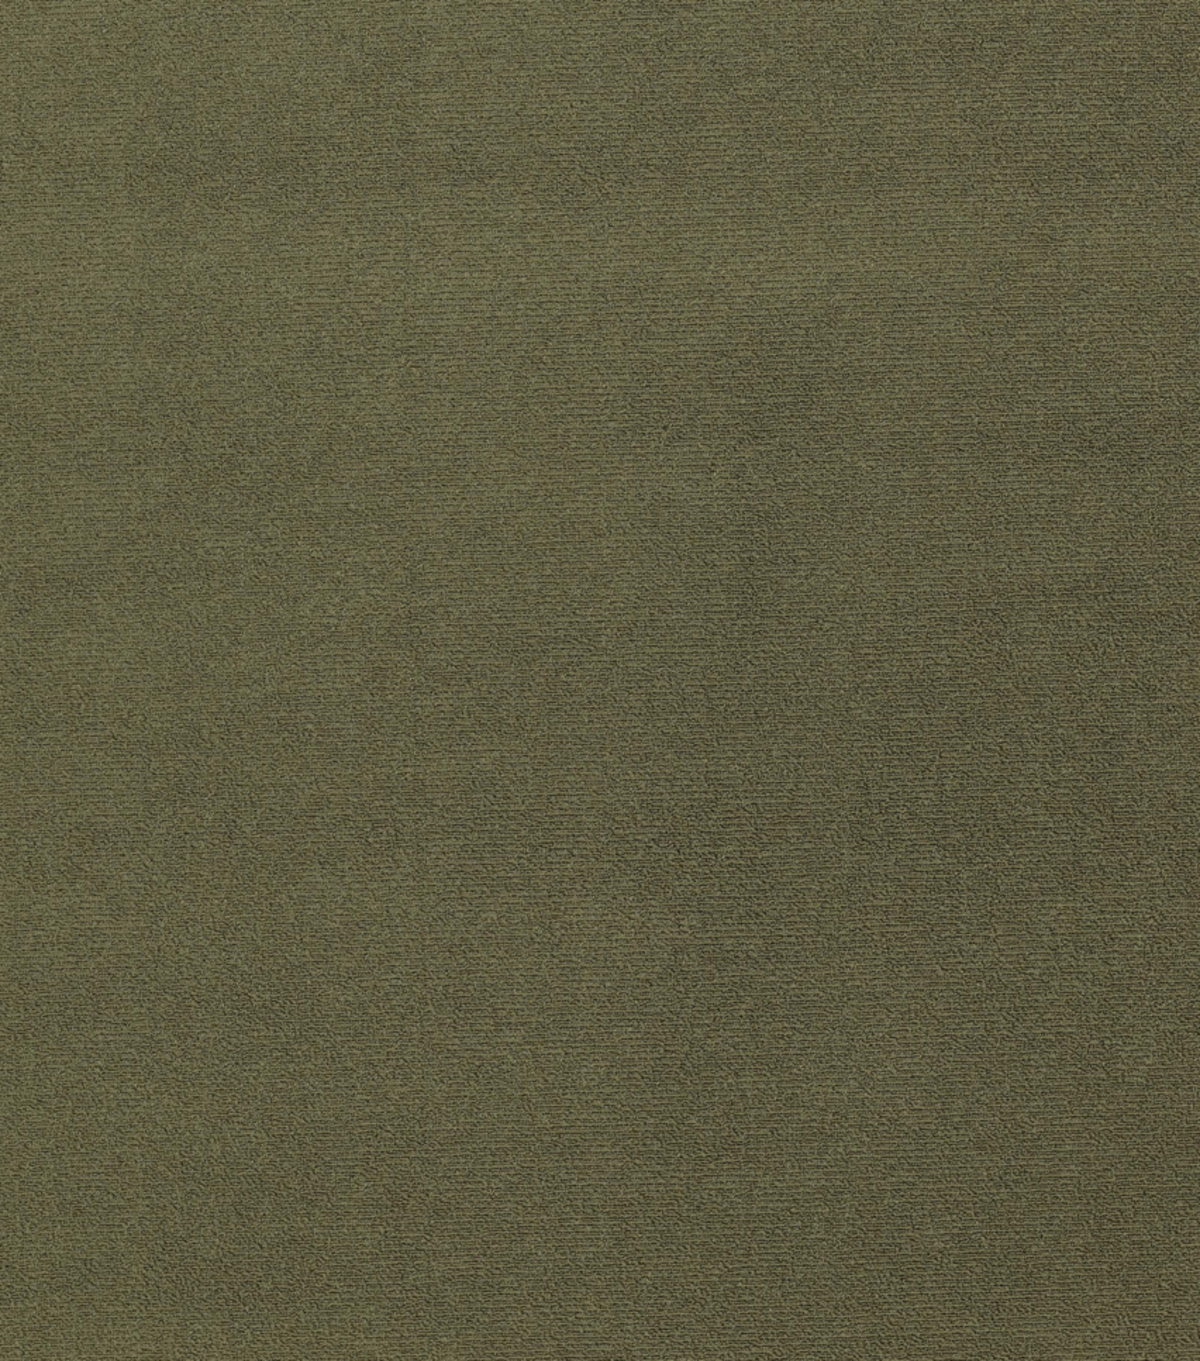 Home Decor Upholstery Fabric-Crypton Interlude-Ivy